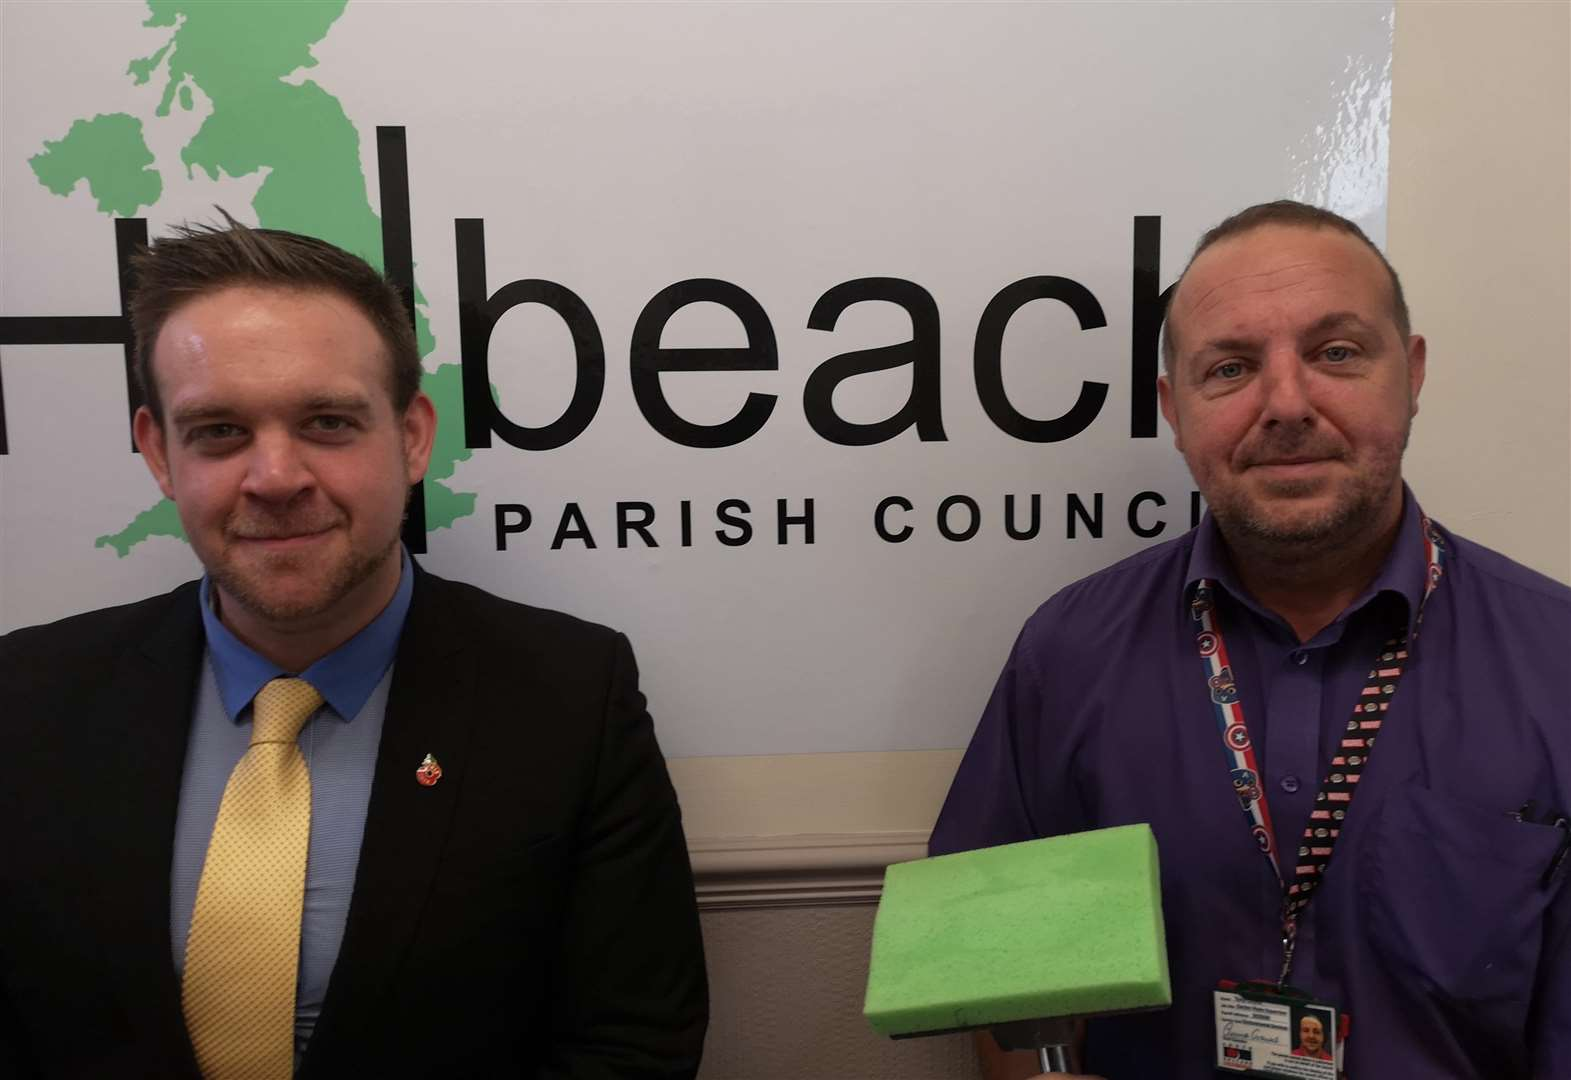 Fightback starts against rubbish across Holbeach